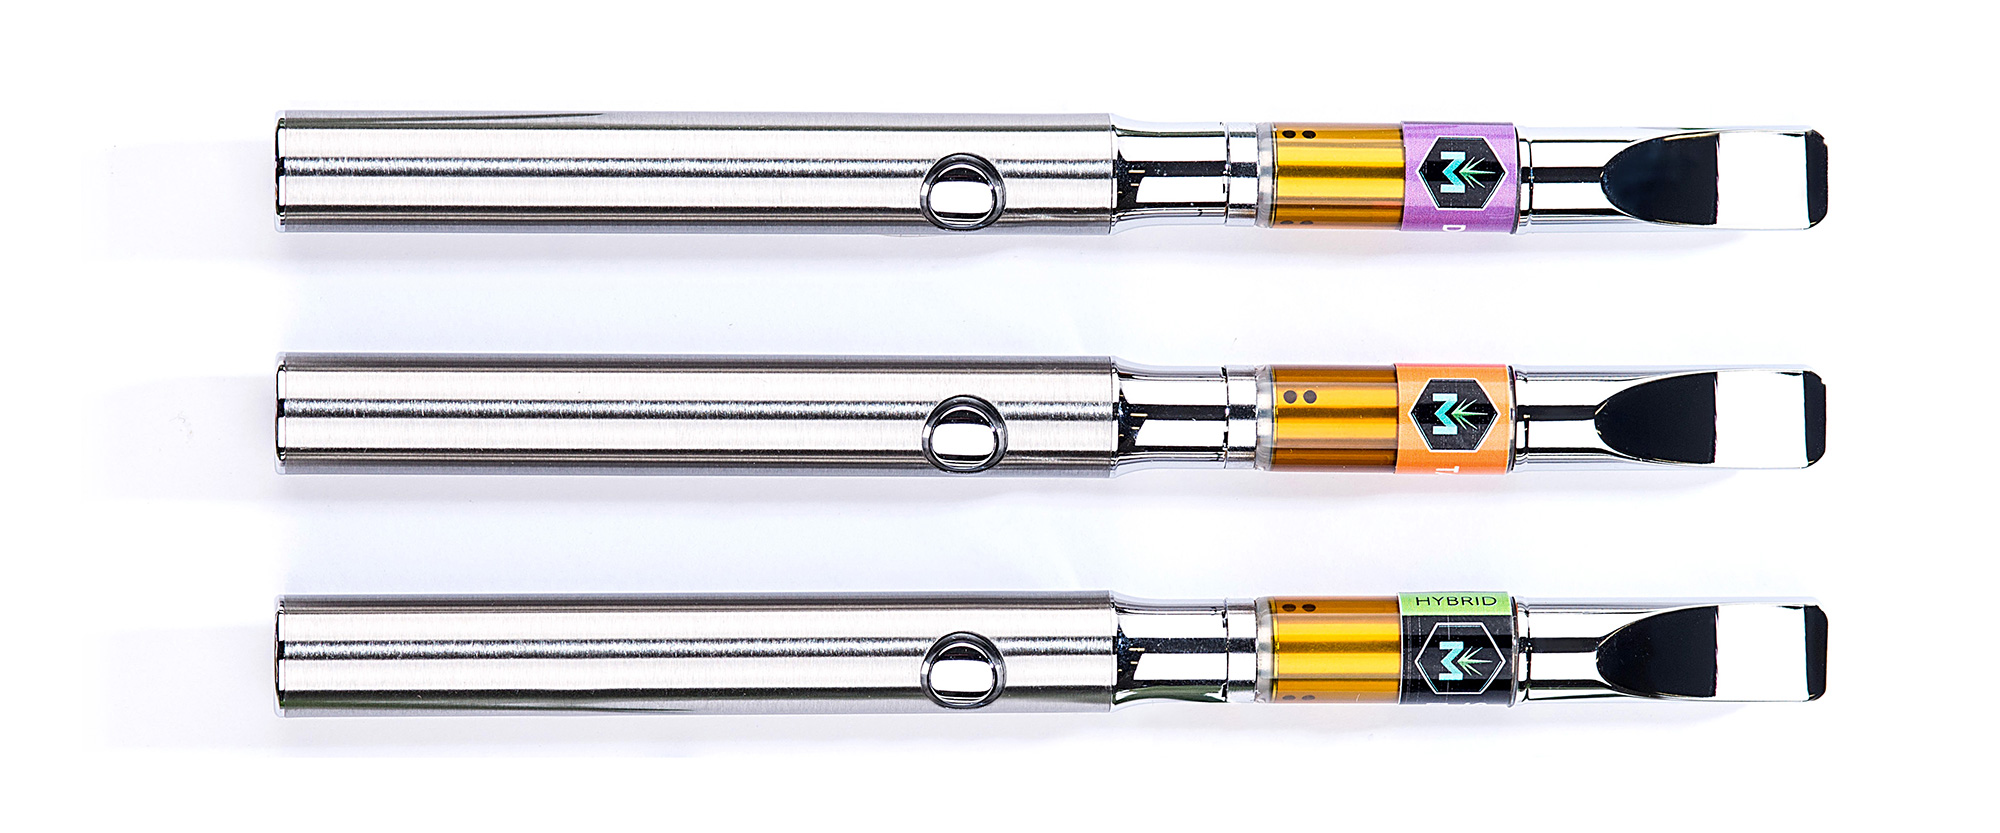 Pure cannabis oil vape pens - Matrix NV Cannabis Products